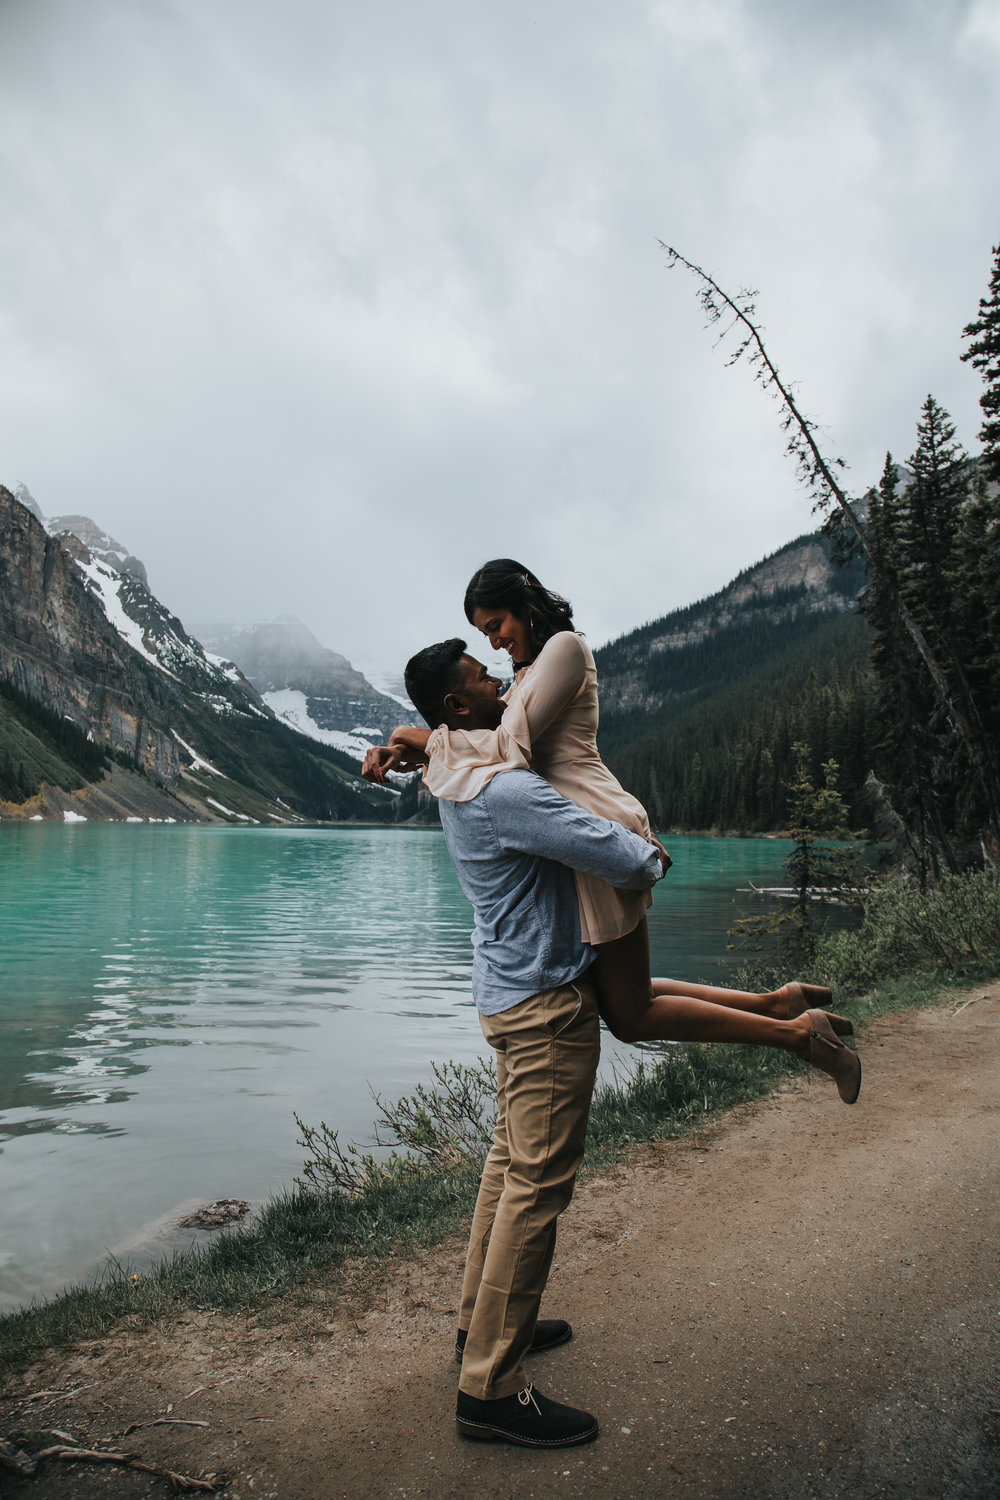 esha and bestin's mountain love story session     moraine lake & lake louise , banff national park, canada